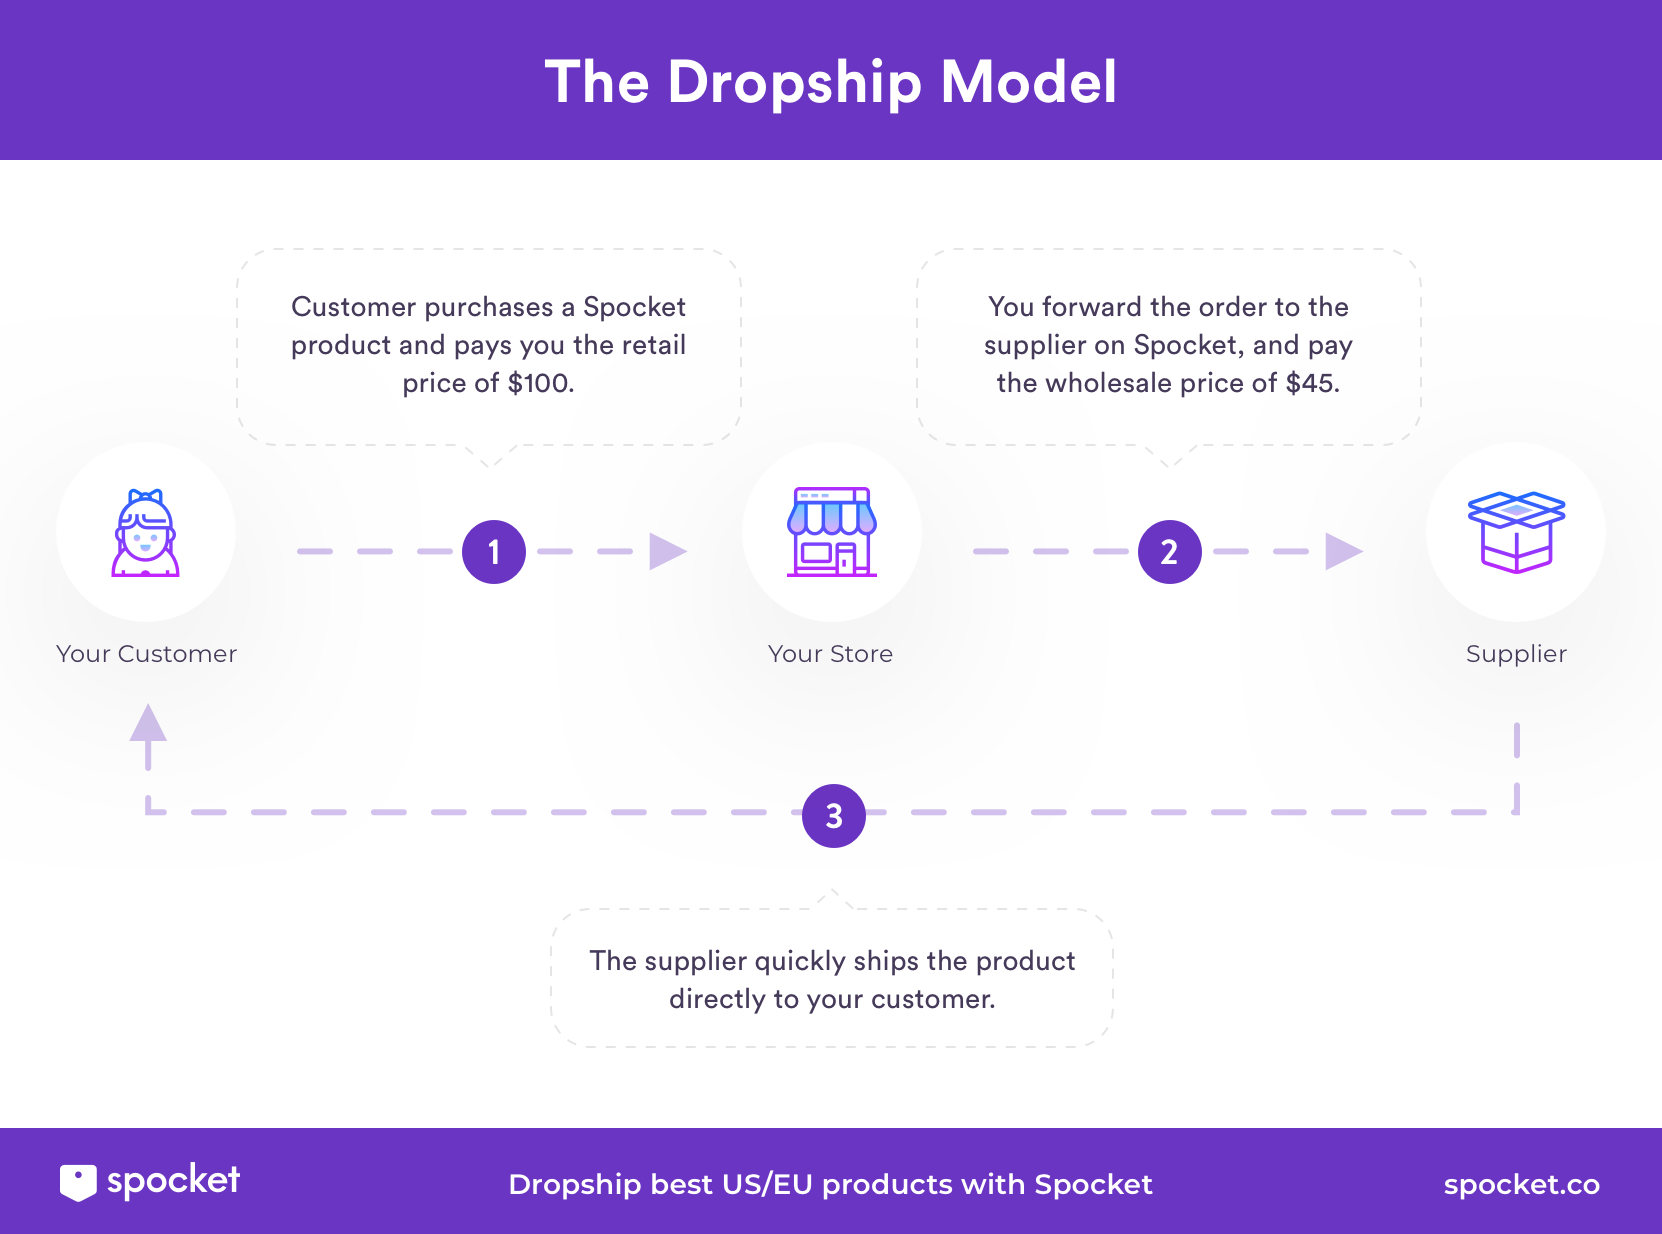 The dropshipping model of ecommerce